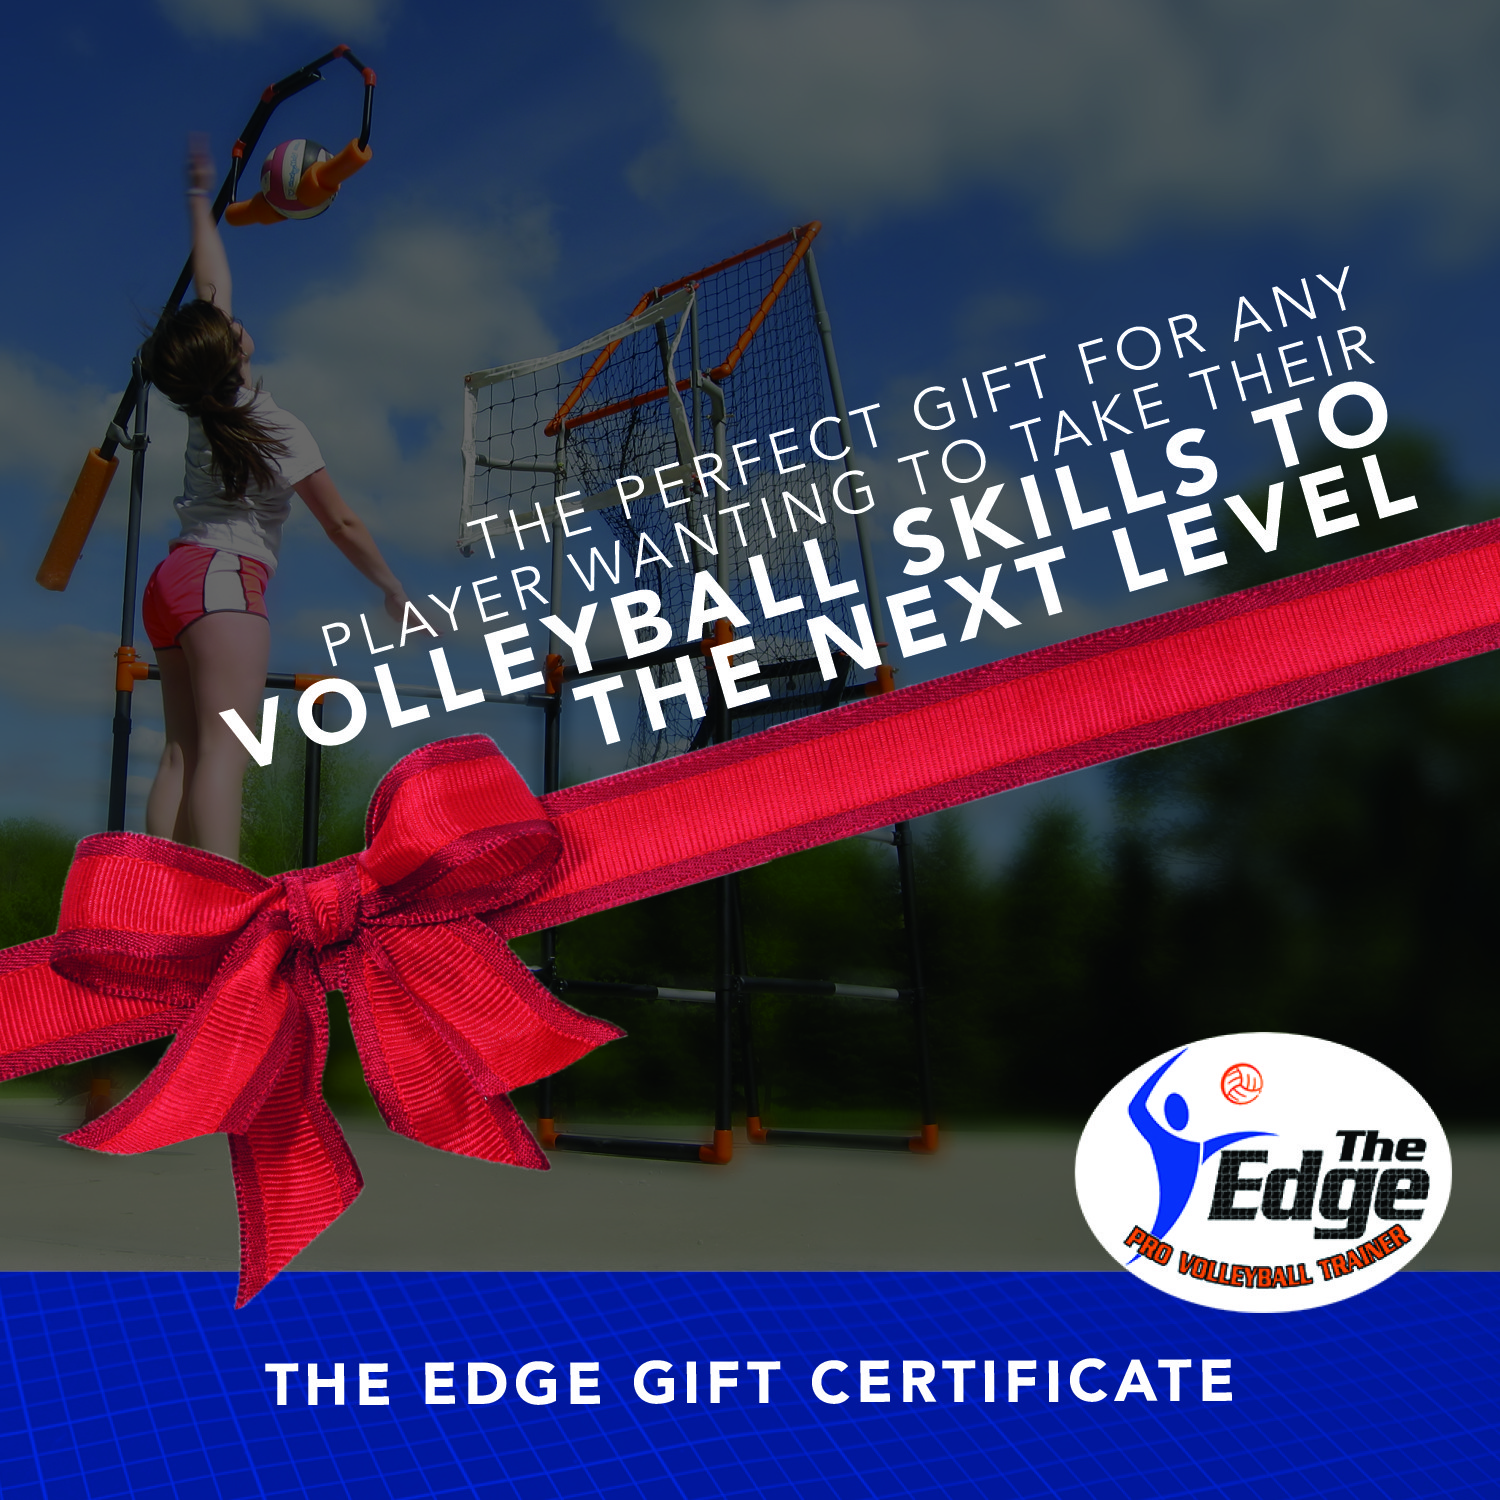 The Edge Pro Volleyball gift card